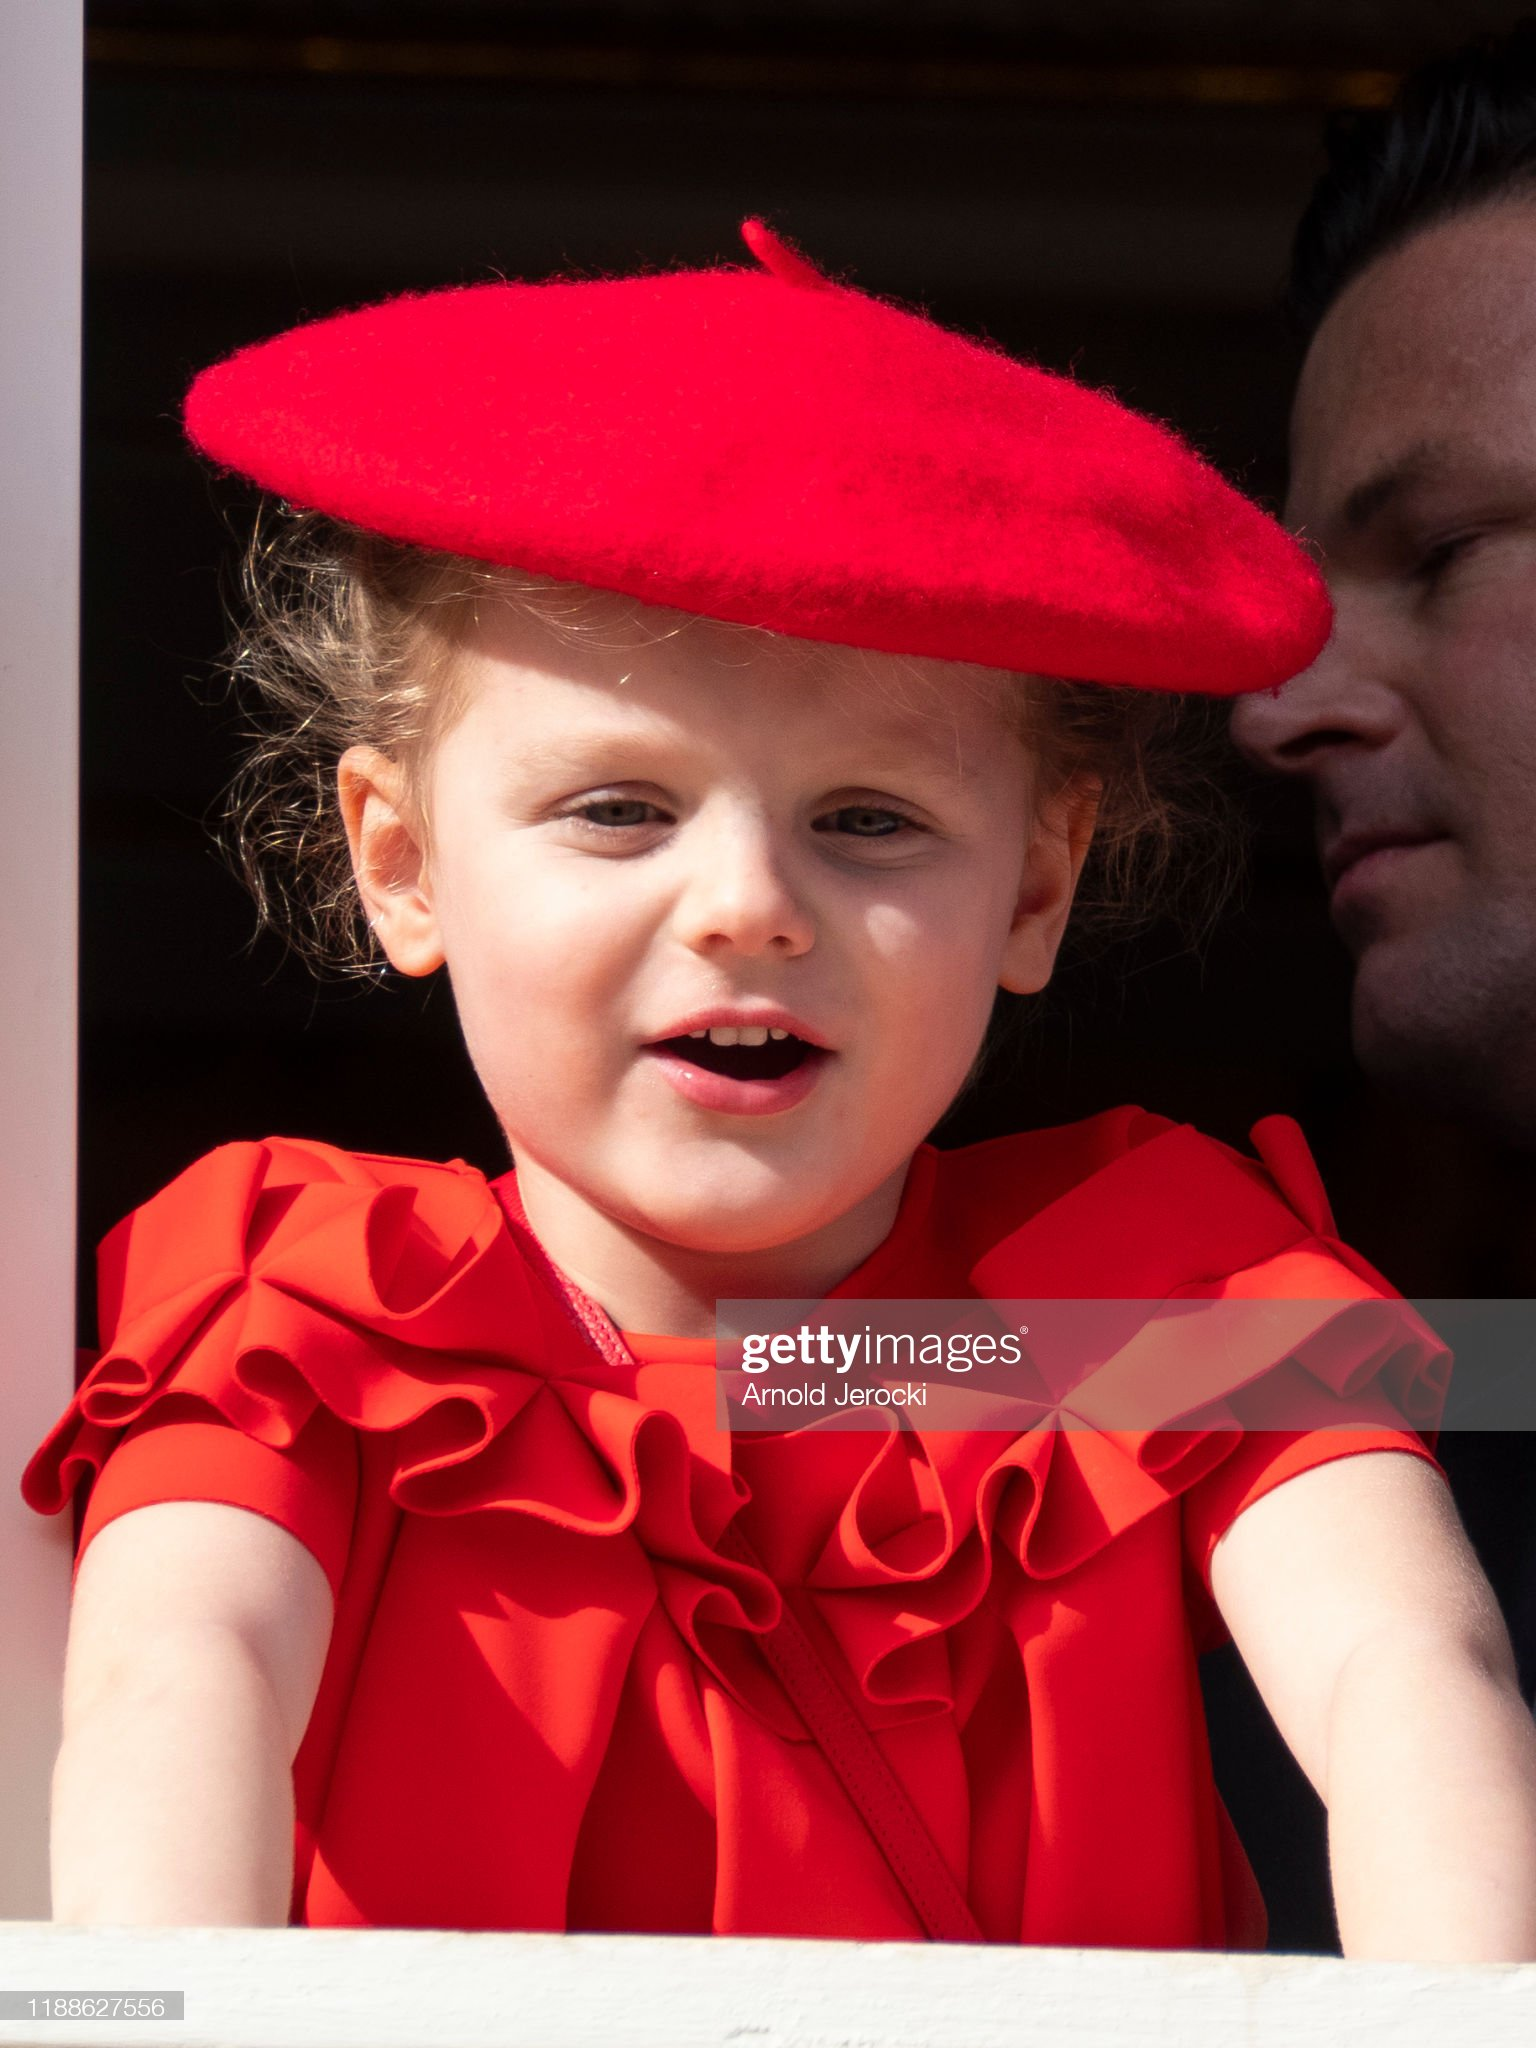 princess-gabriella-of-monaco-stand-at-the-palace-balcony-during-the-picture-id1188627556